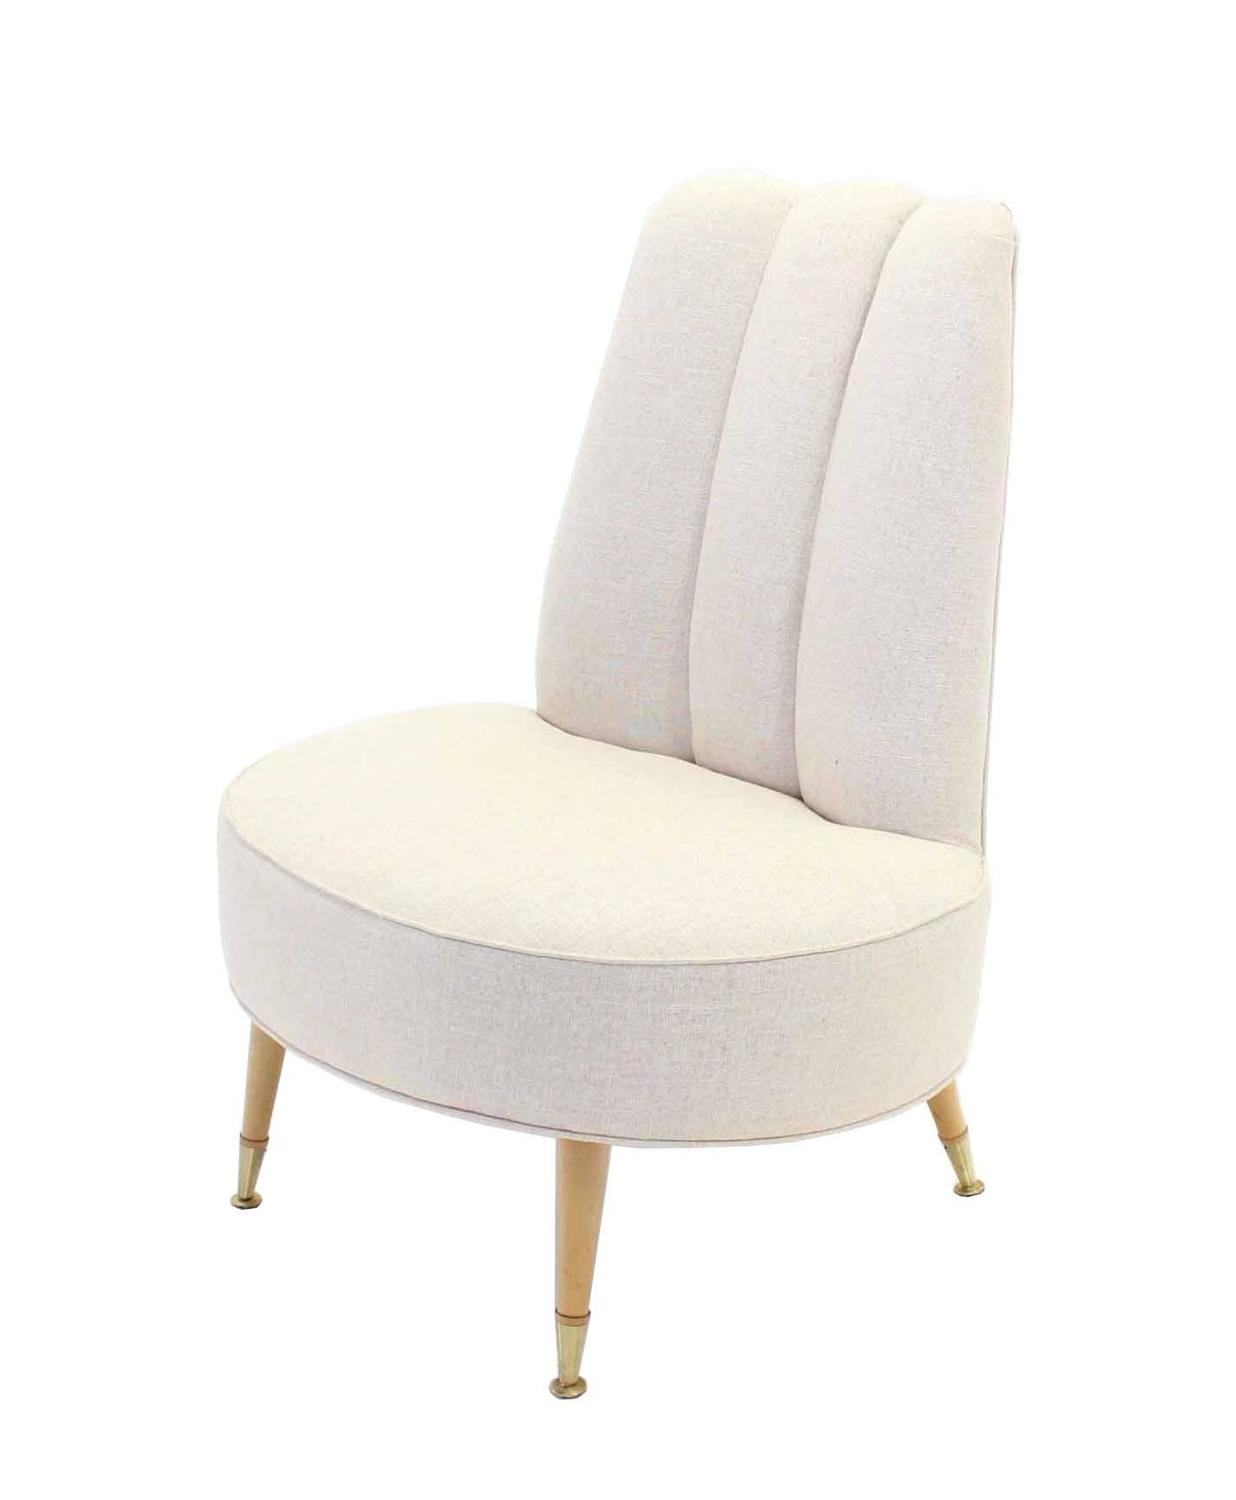 modern slipper chair kneeling office pros and cons newly upholstered mid century chairs for